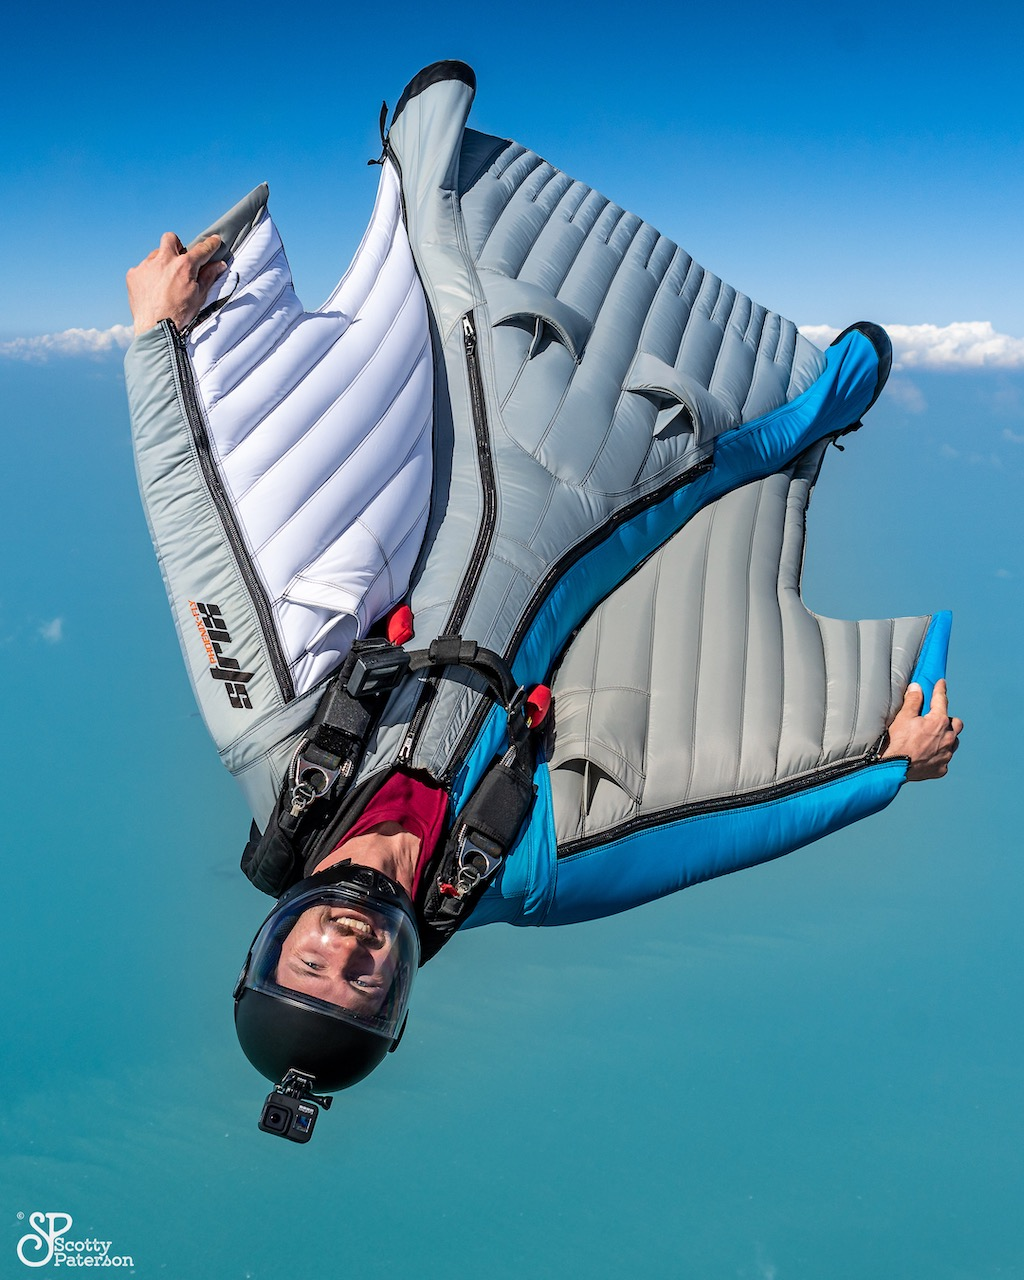 Peter Salzmann Wingsuitpilot, Picture by Scott Paterson